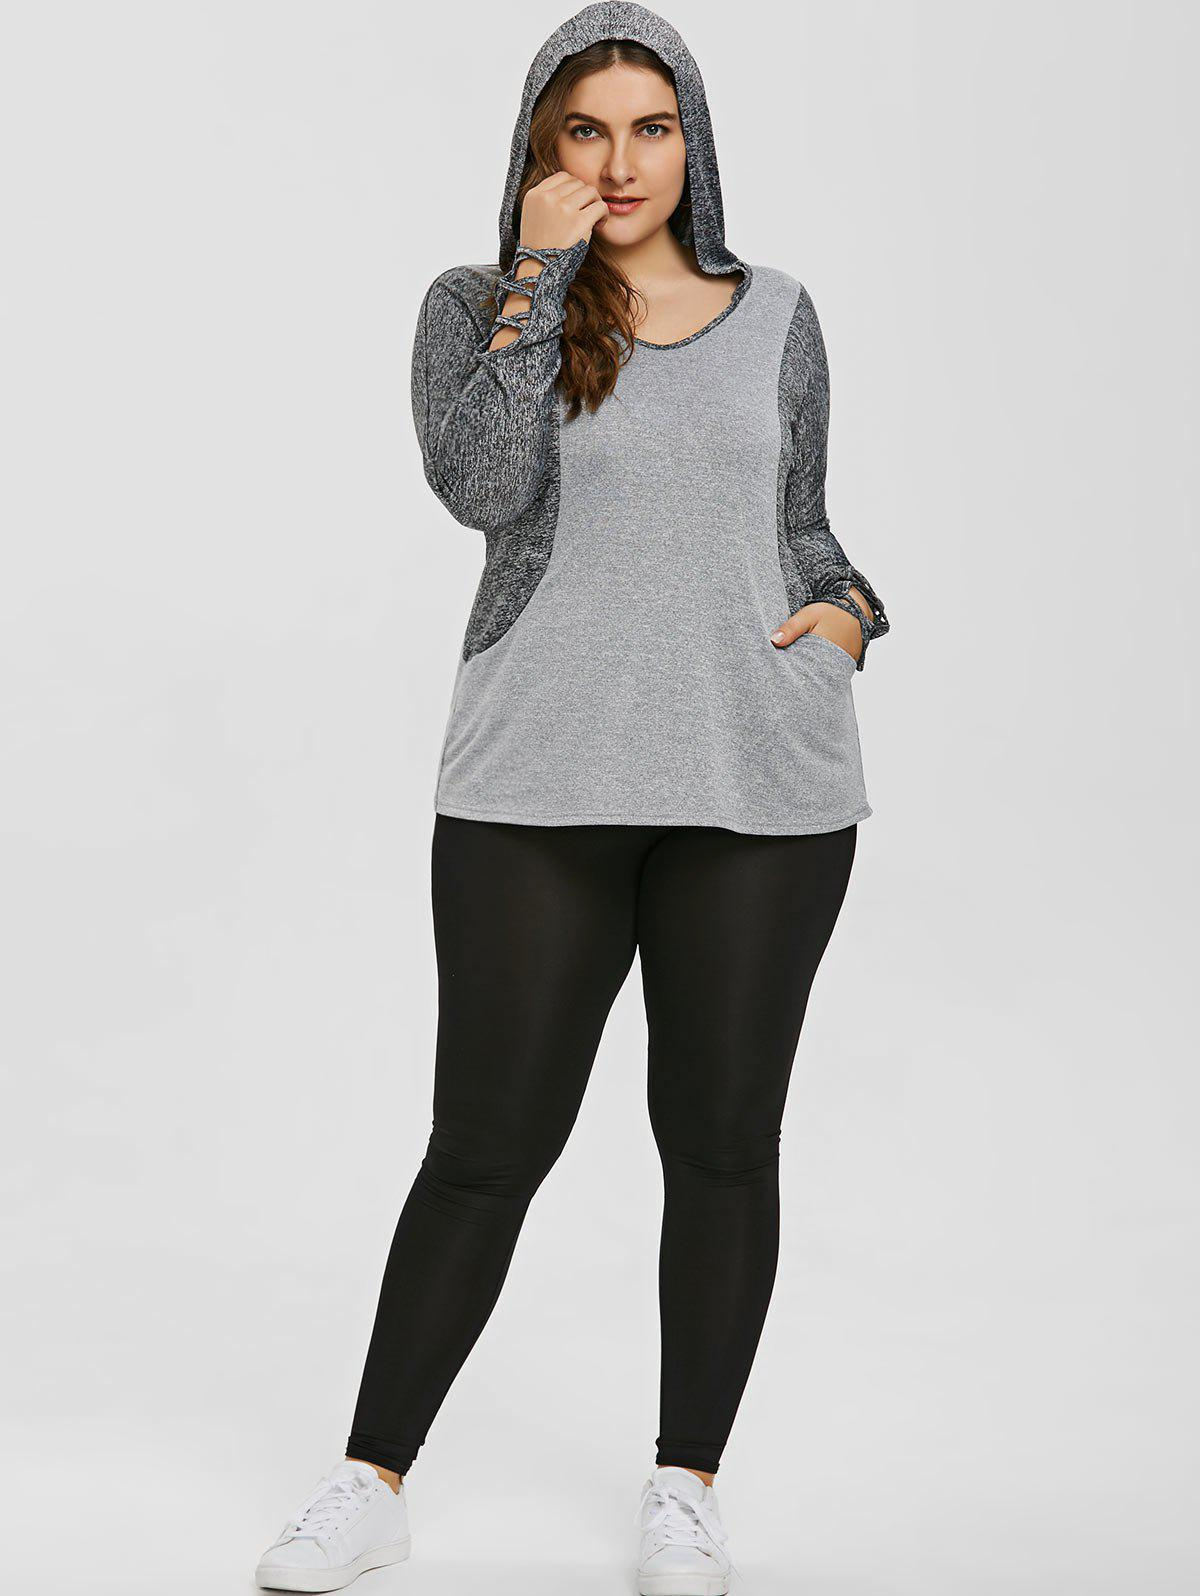 Plus Size Color Block Hooded Sports Top - GRAY 3XL